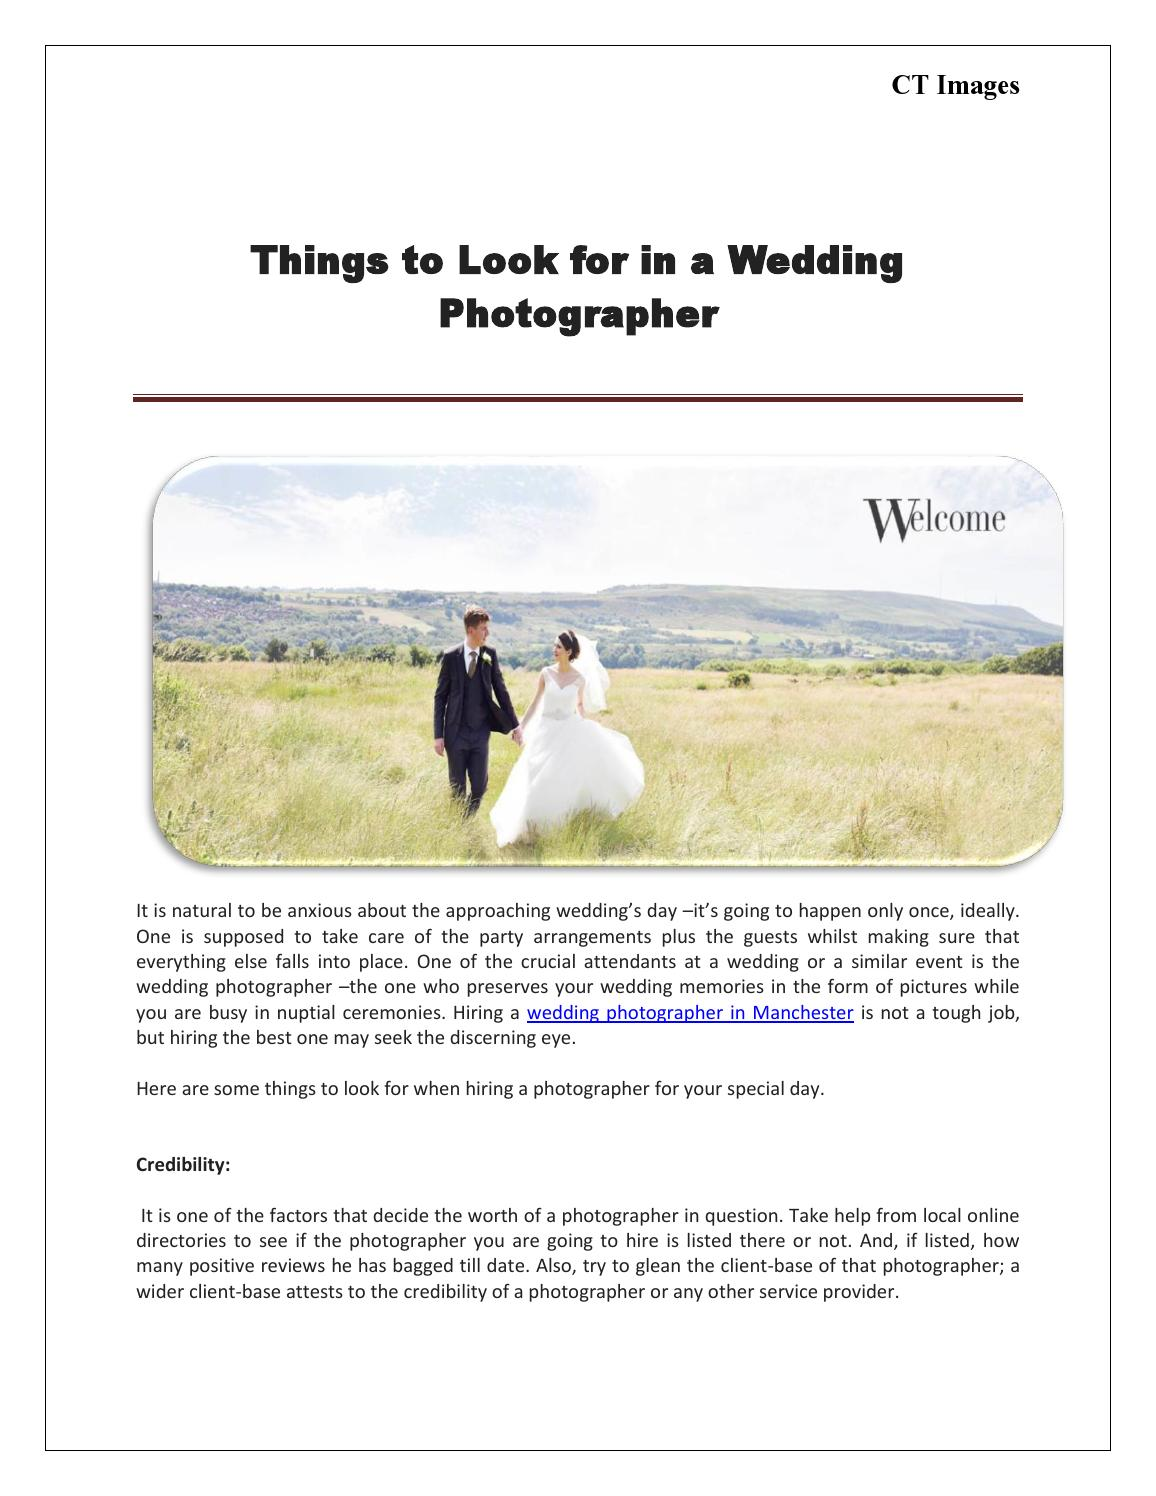 BOLTON CHEAP WEDDING PHOTOGRAPHERS - CT Images by jarry ren - issuu